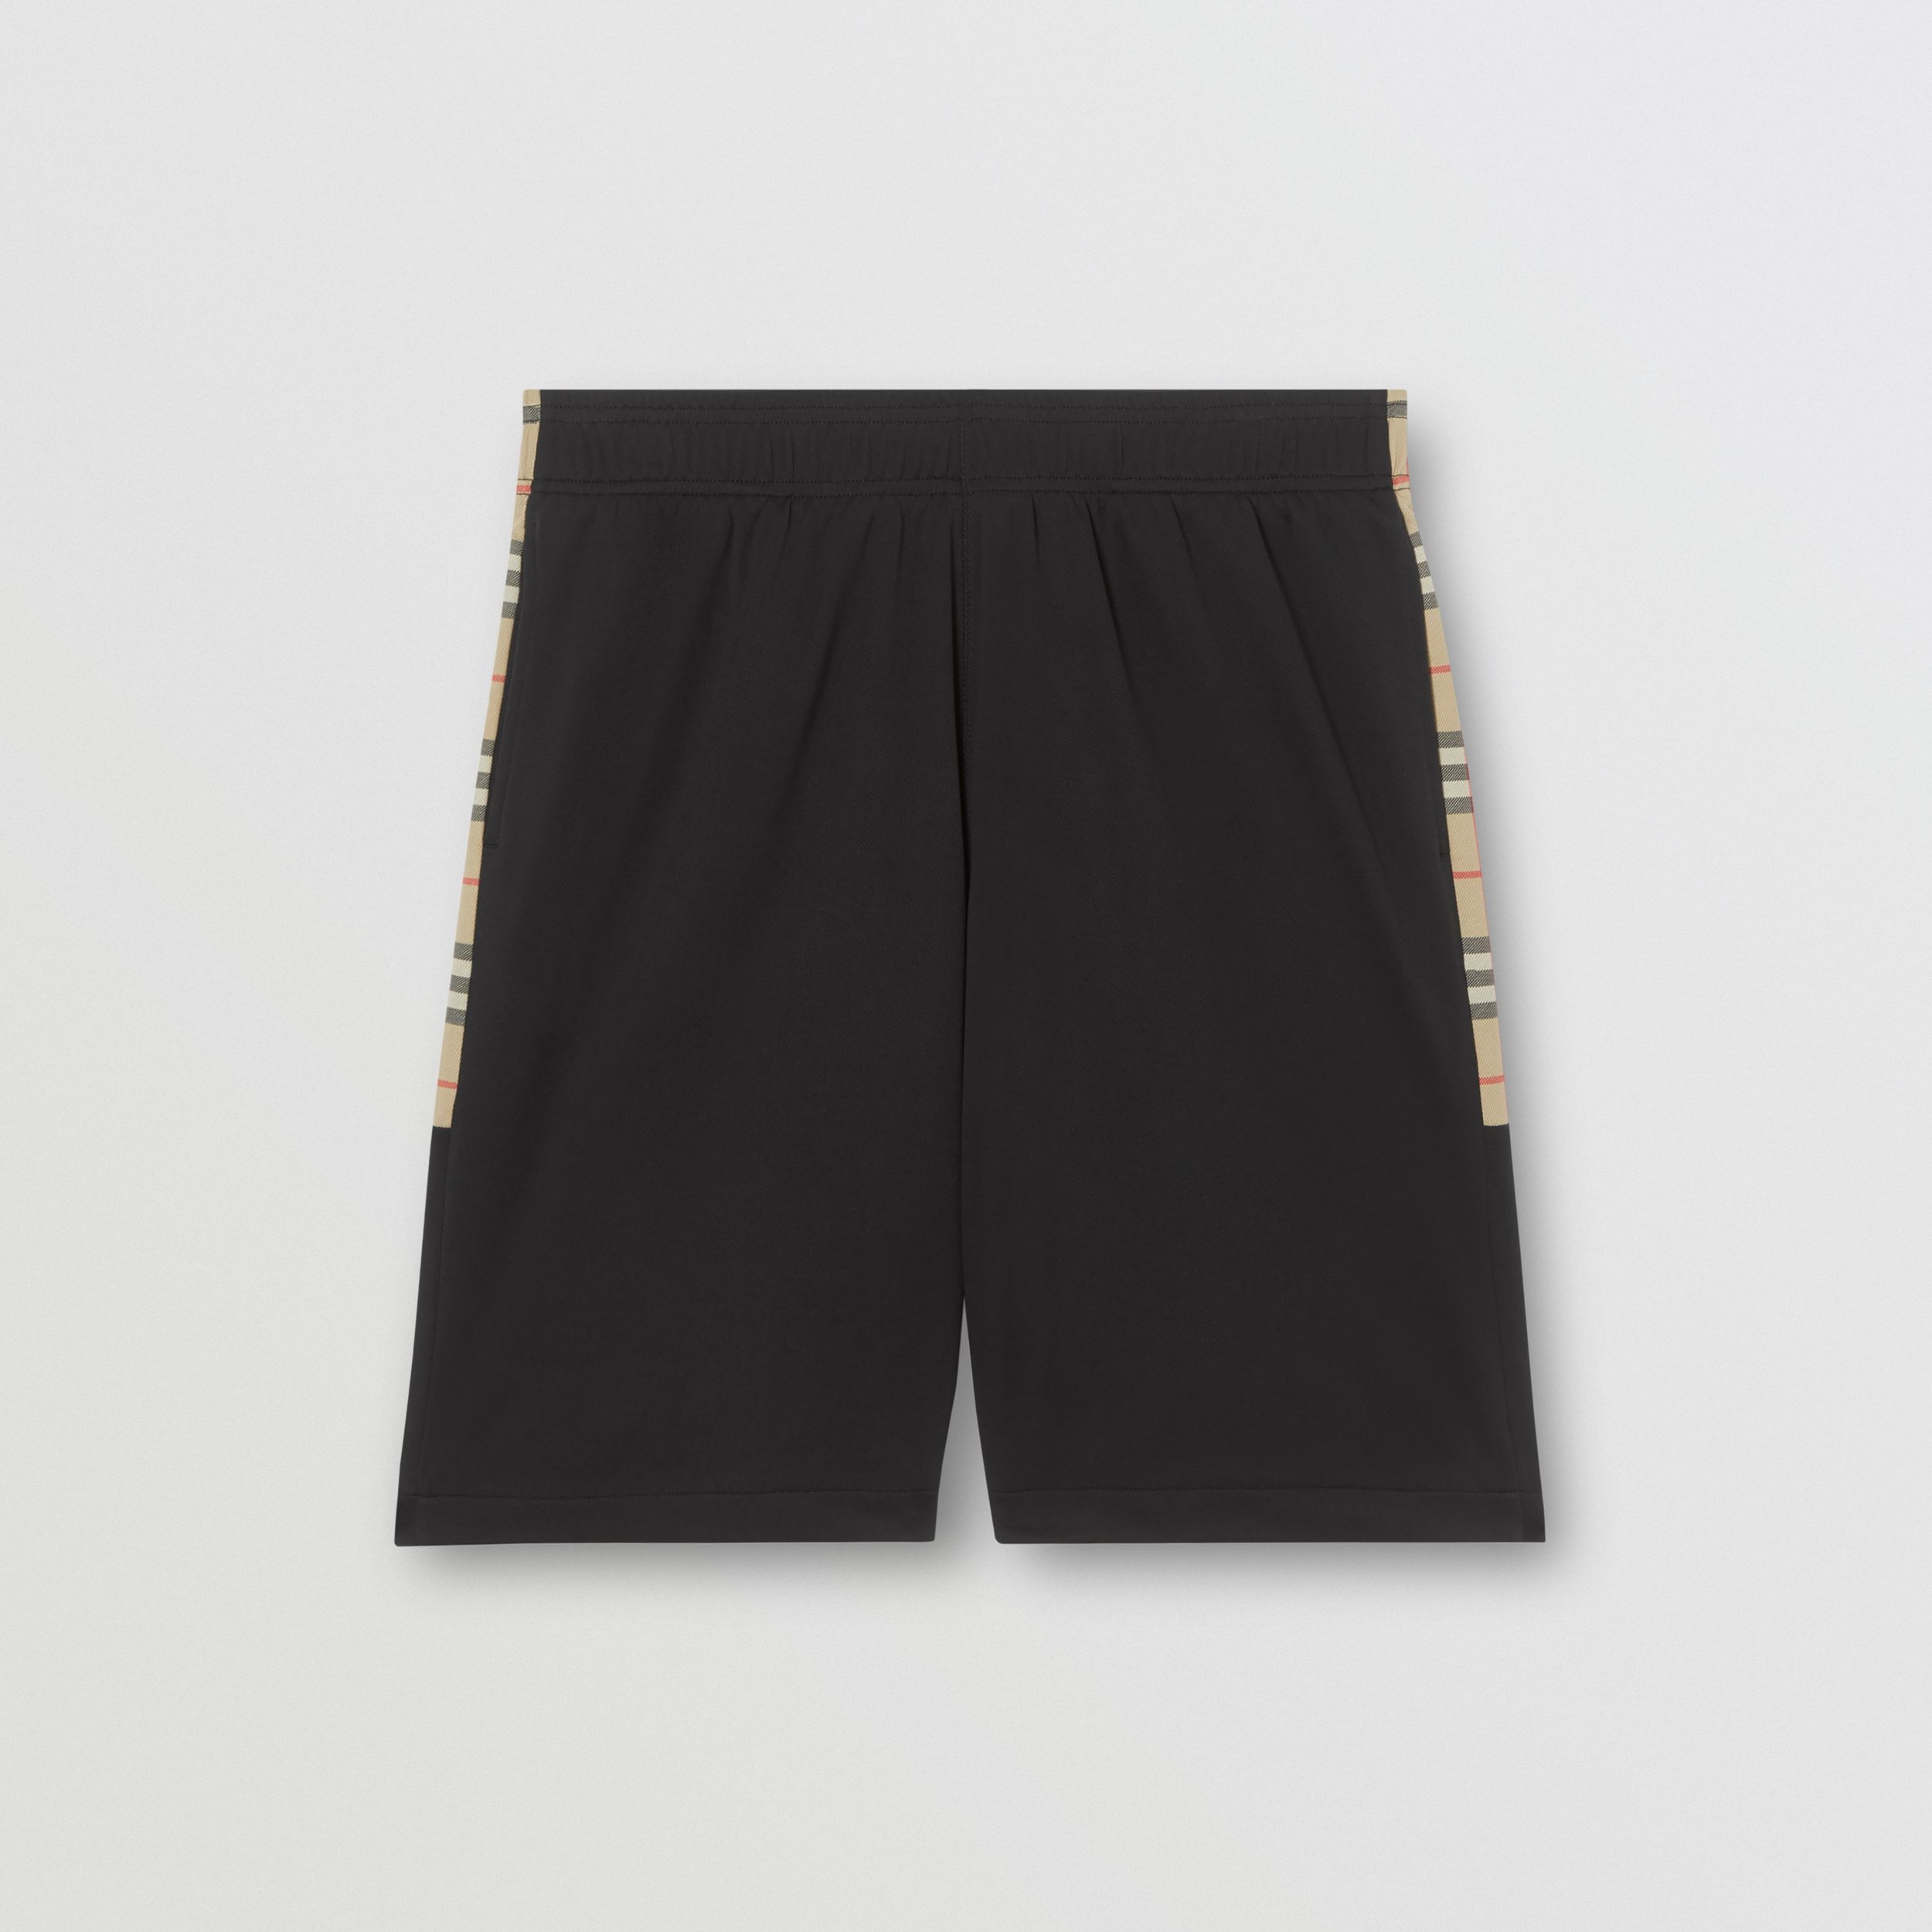 Vintage Check Trim Technical Twill Shorts in Black - Men | Burberry Singapore - 4